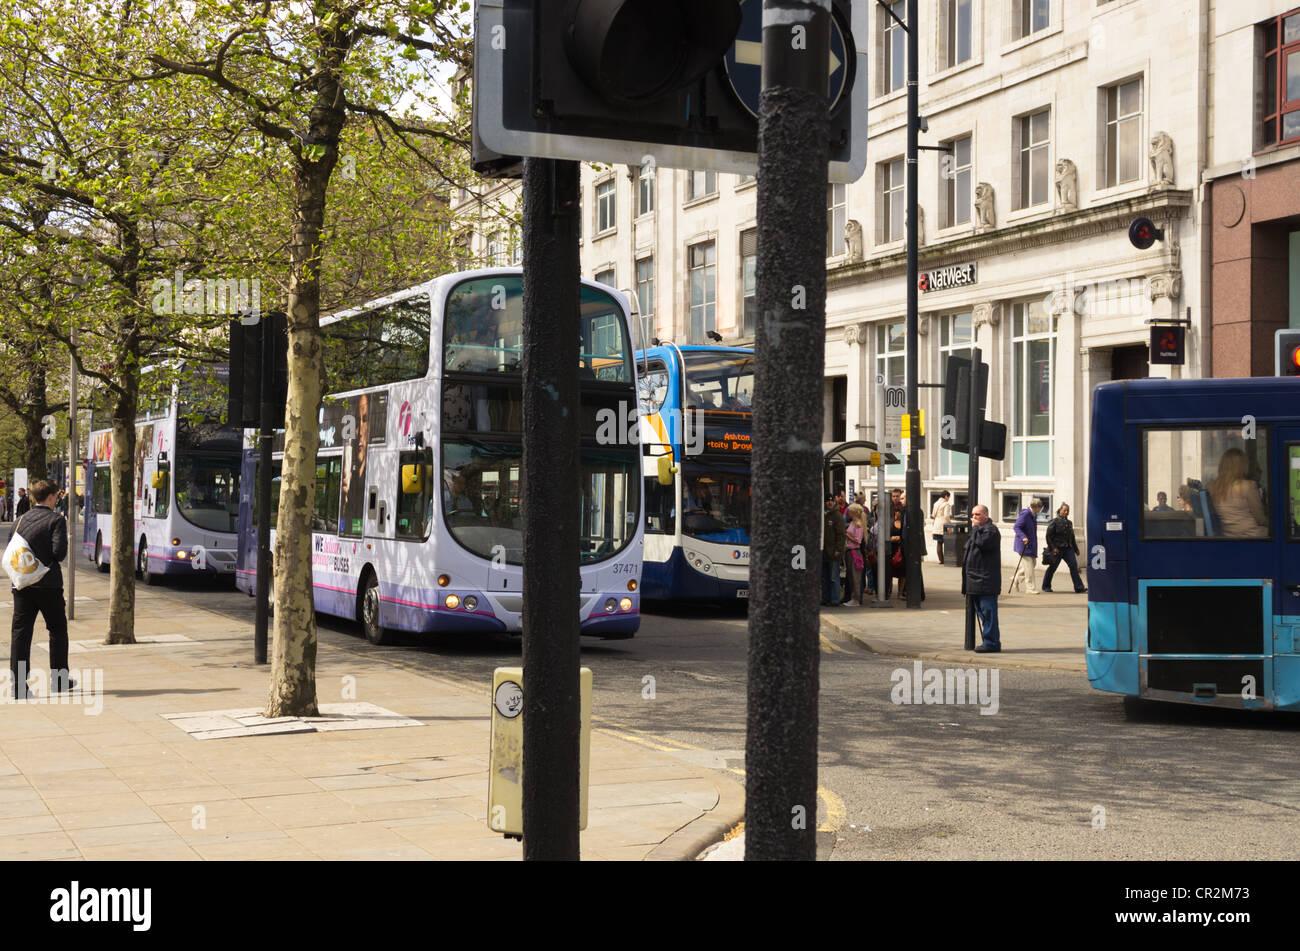 Buses at Traffic lights in Picadilly Square Manchester - Stock Image